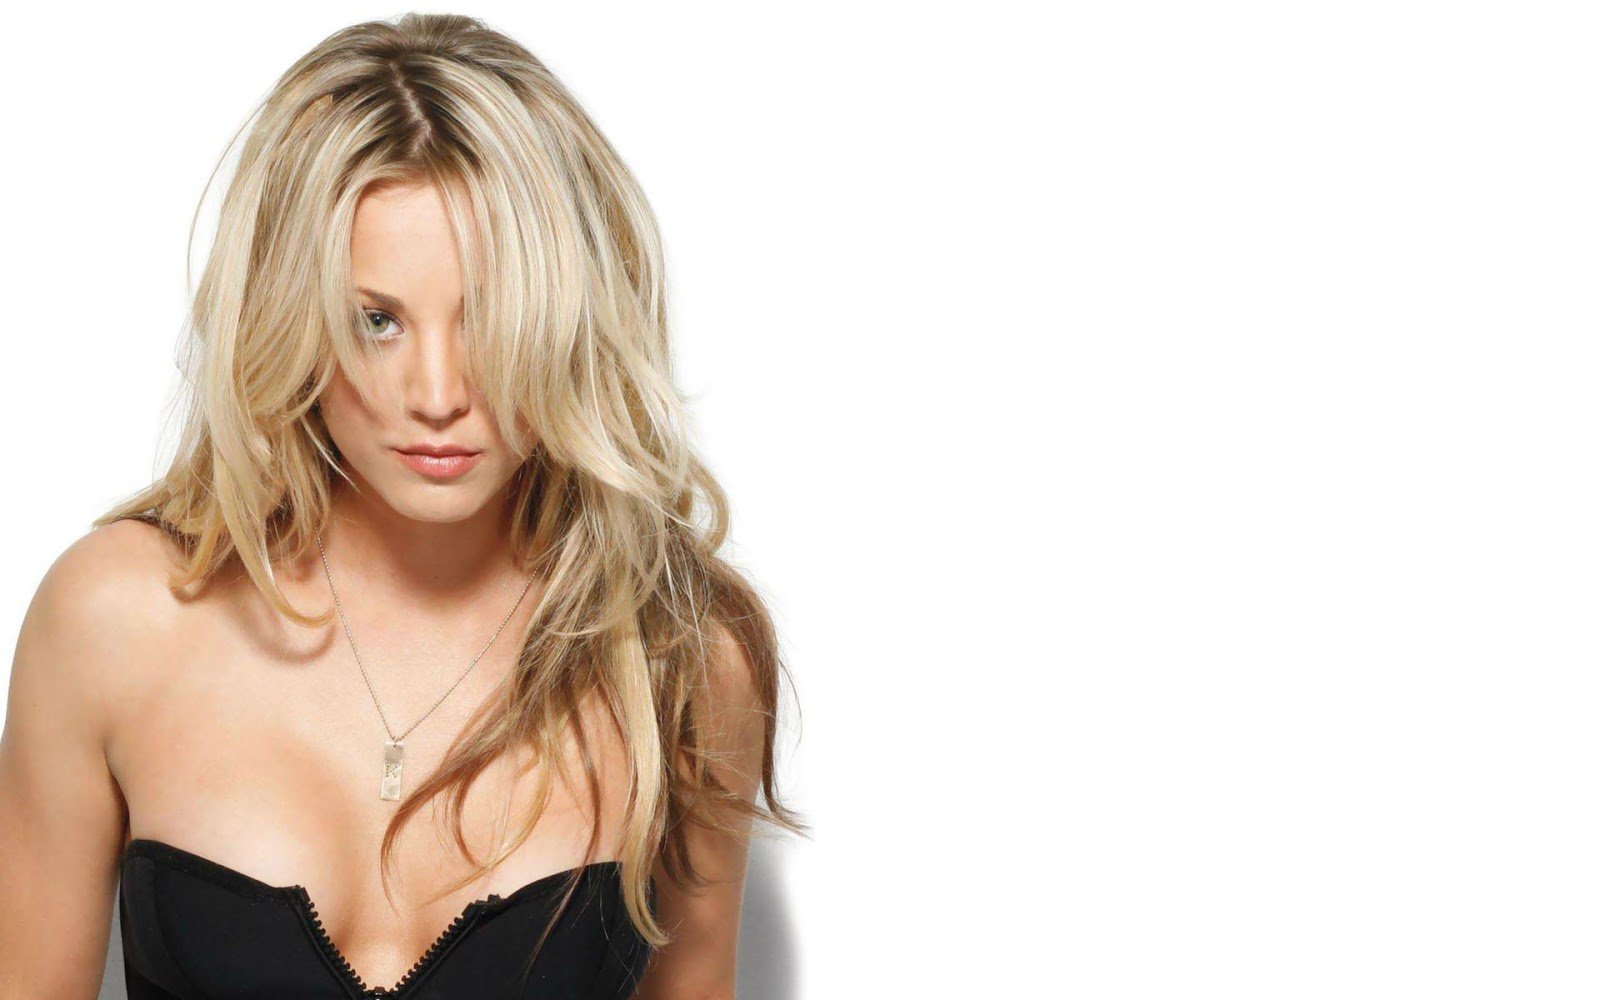 Kaley Cuoco Desktop HD wallpapers Wallpapers HD Best 1600x1000